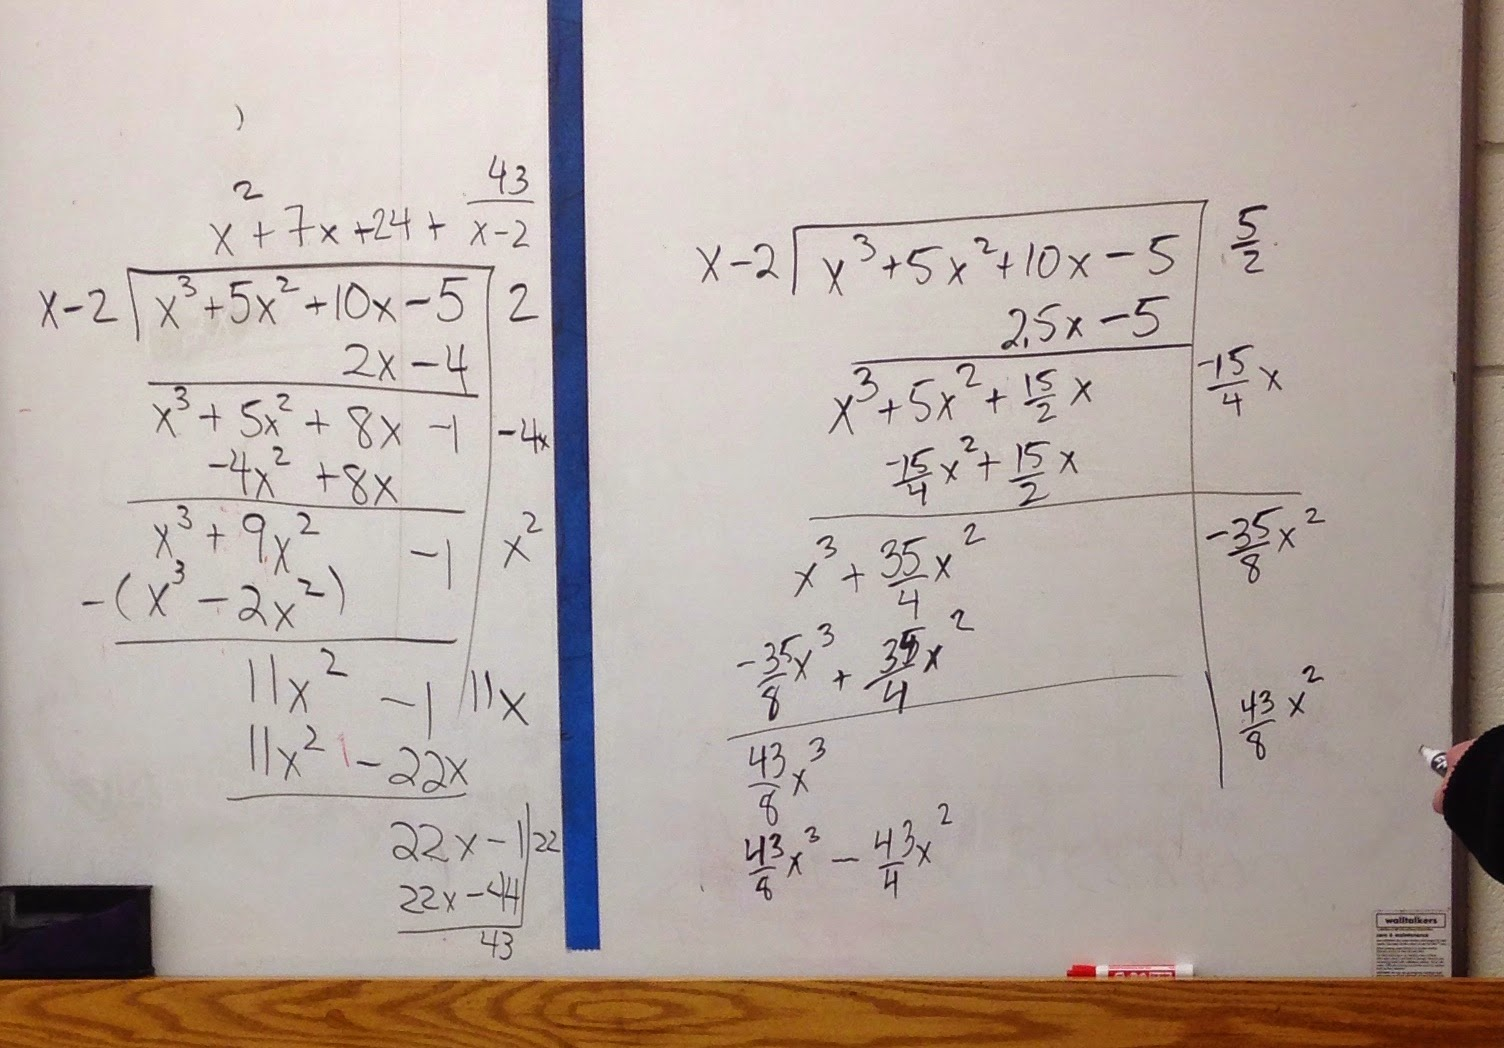 How To Check Polynomial Long Division With Remainders